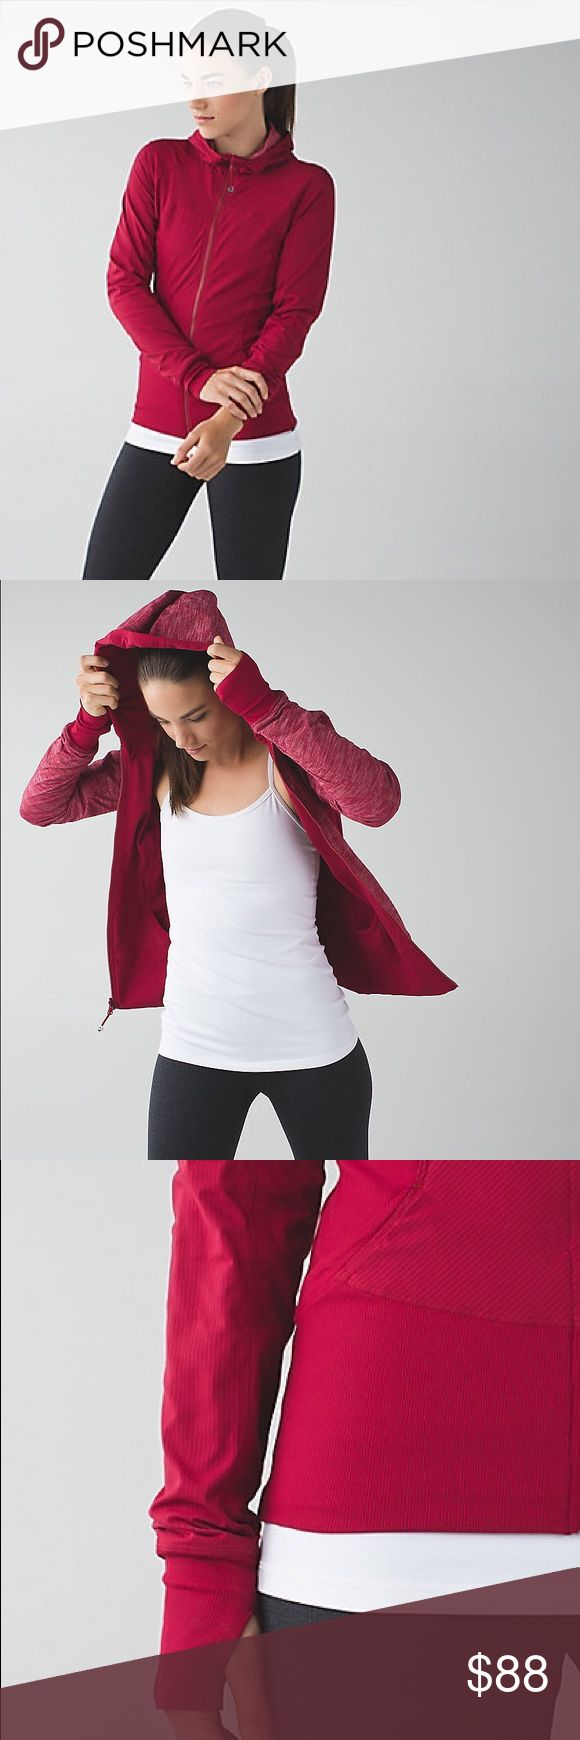 LULULEMON In Flux Jacket - Cranberry Red Sz Small lululemon athletica In Flux Jacket - Gorgeous Cranberry Red - Size Small - Lightweight, Stretchy, Reversible, & Water-Repellent - Gently used and in excellent condition! Sold out online - make an offer! lululemon athletica Jackets & Coats